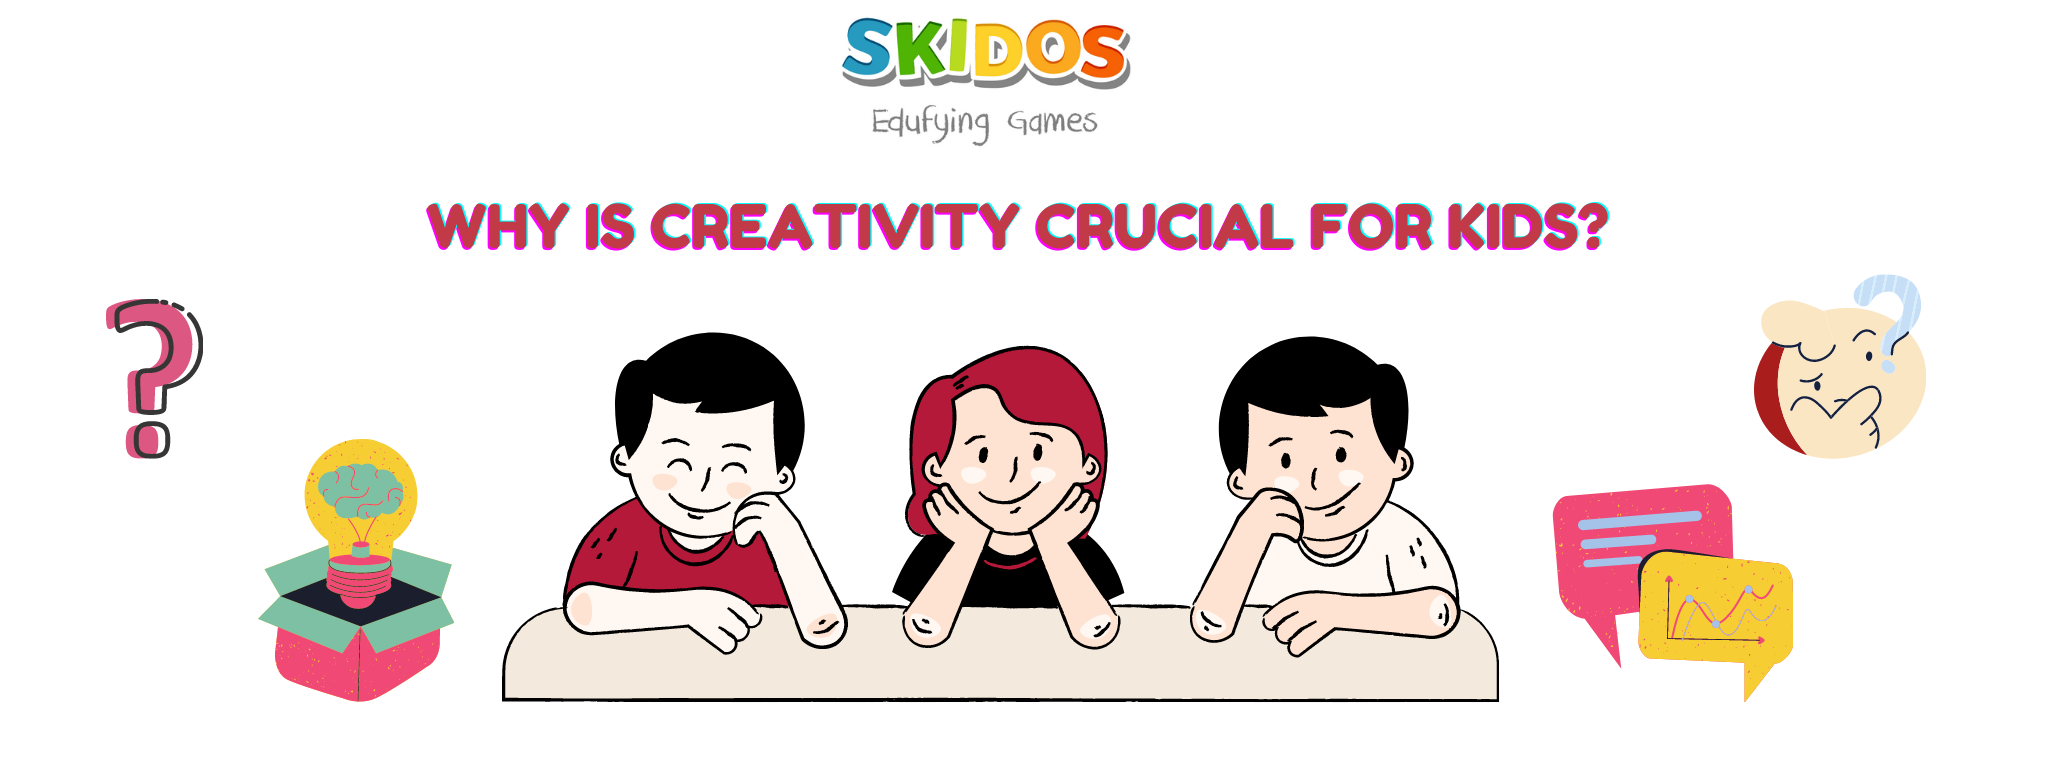 Why is creativity crucial for kids